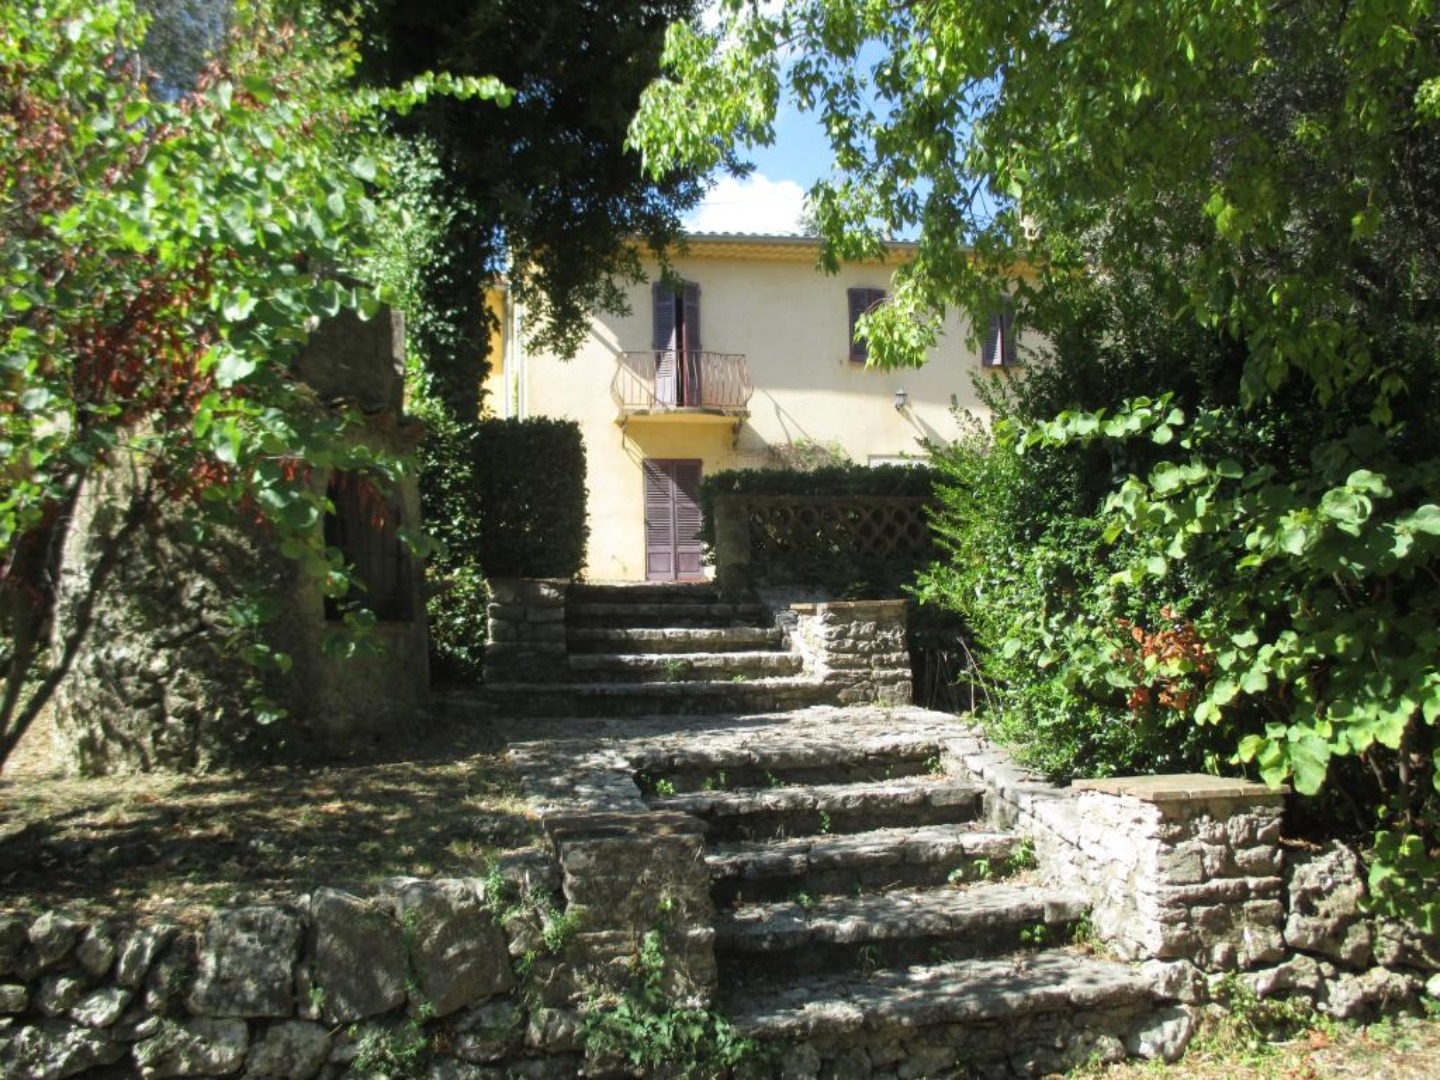 A house with bushes in the background at LE CLOS DES CANEBIERS.